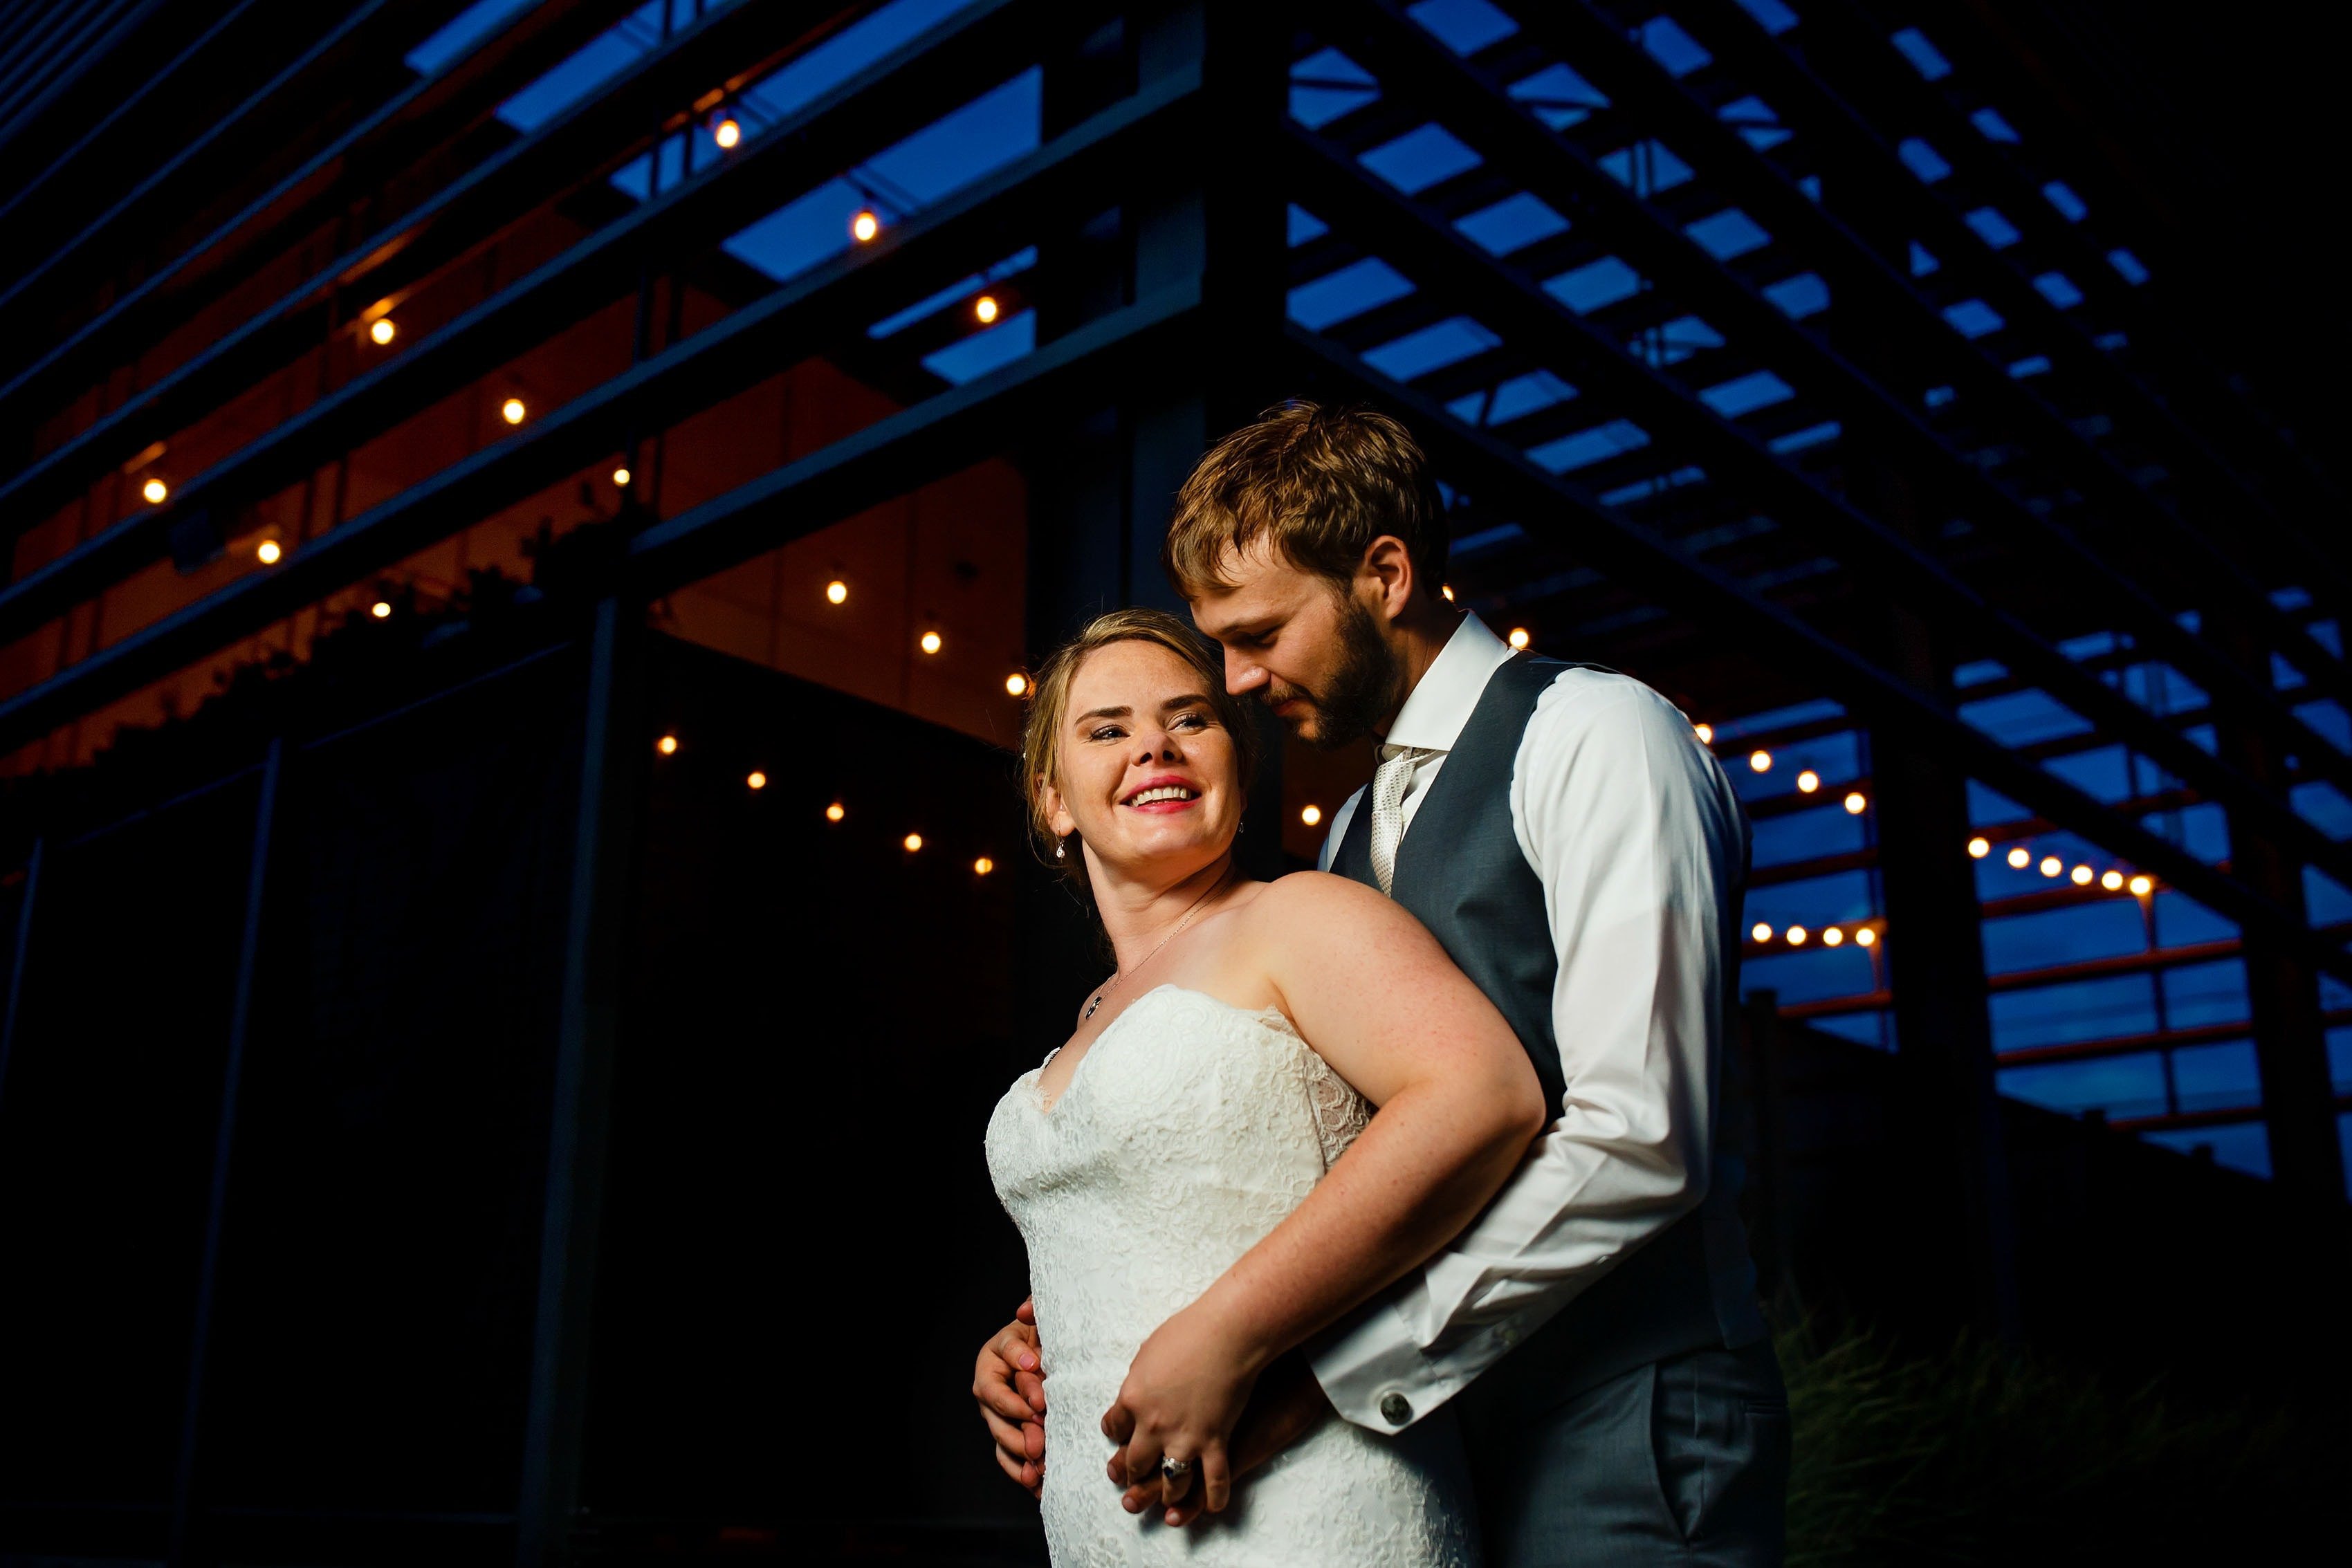 Coza & Joel's Outdoor Art Gallery Wedding in Denver